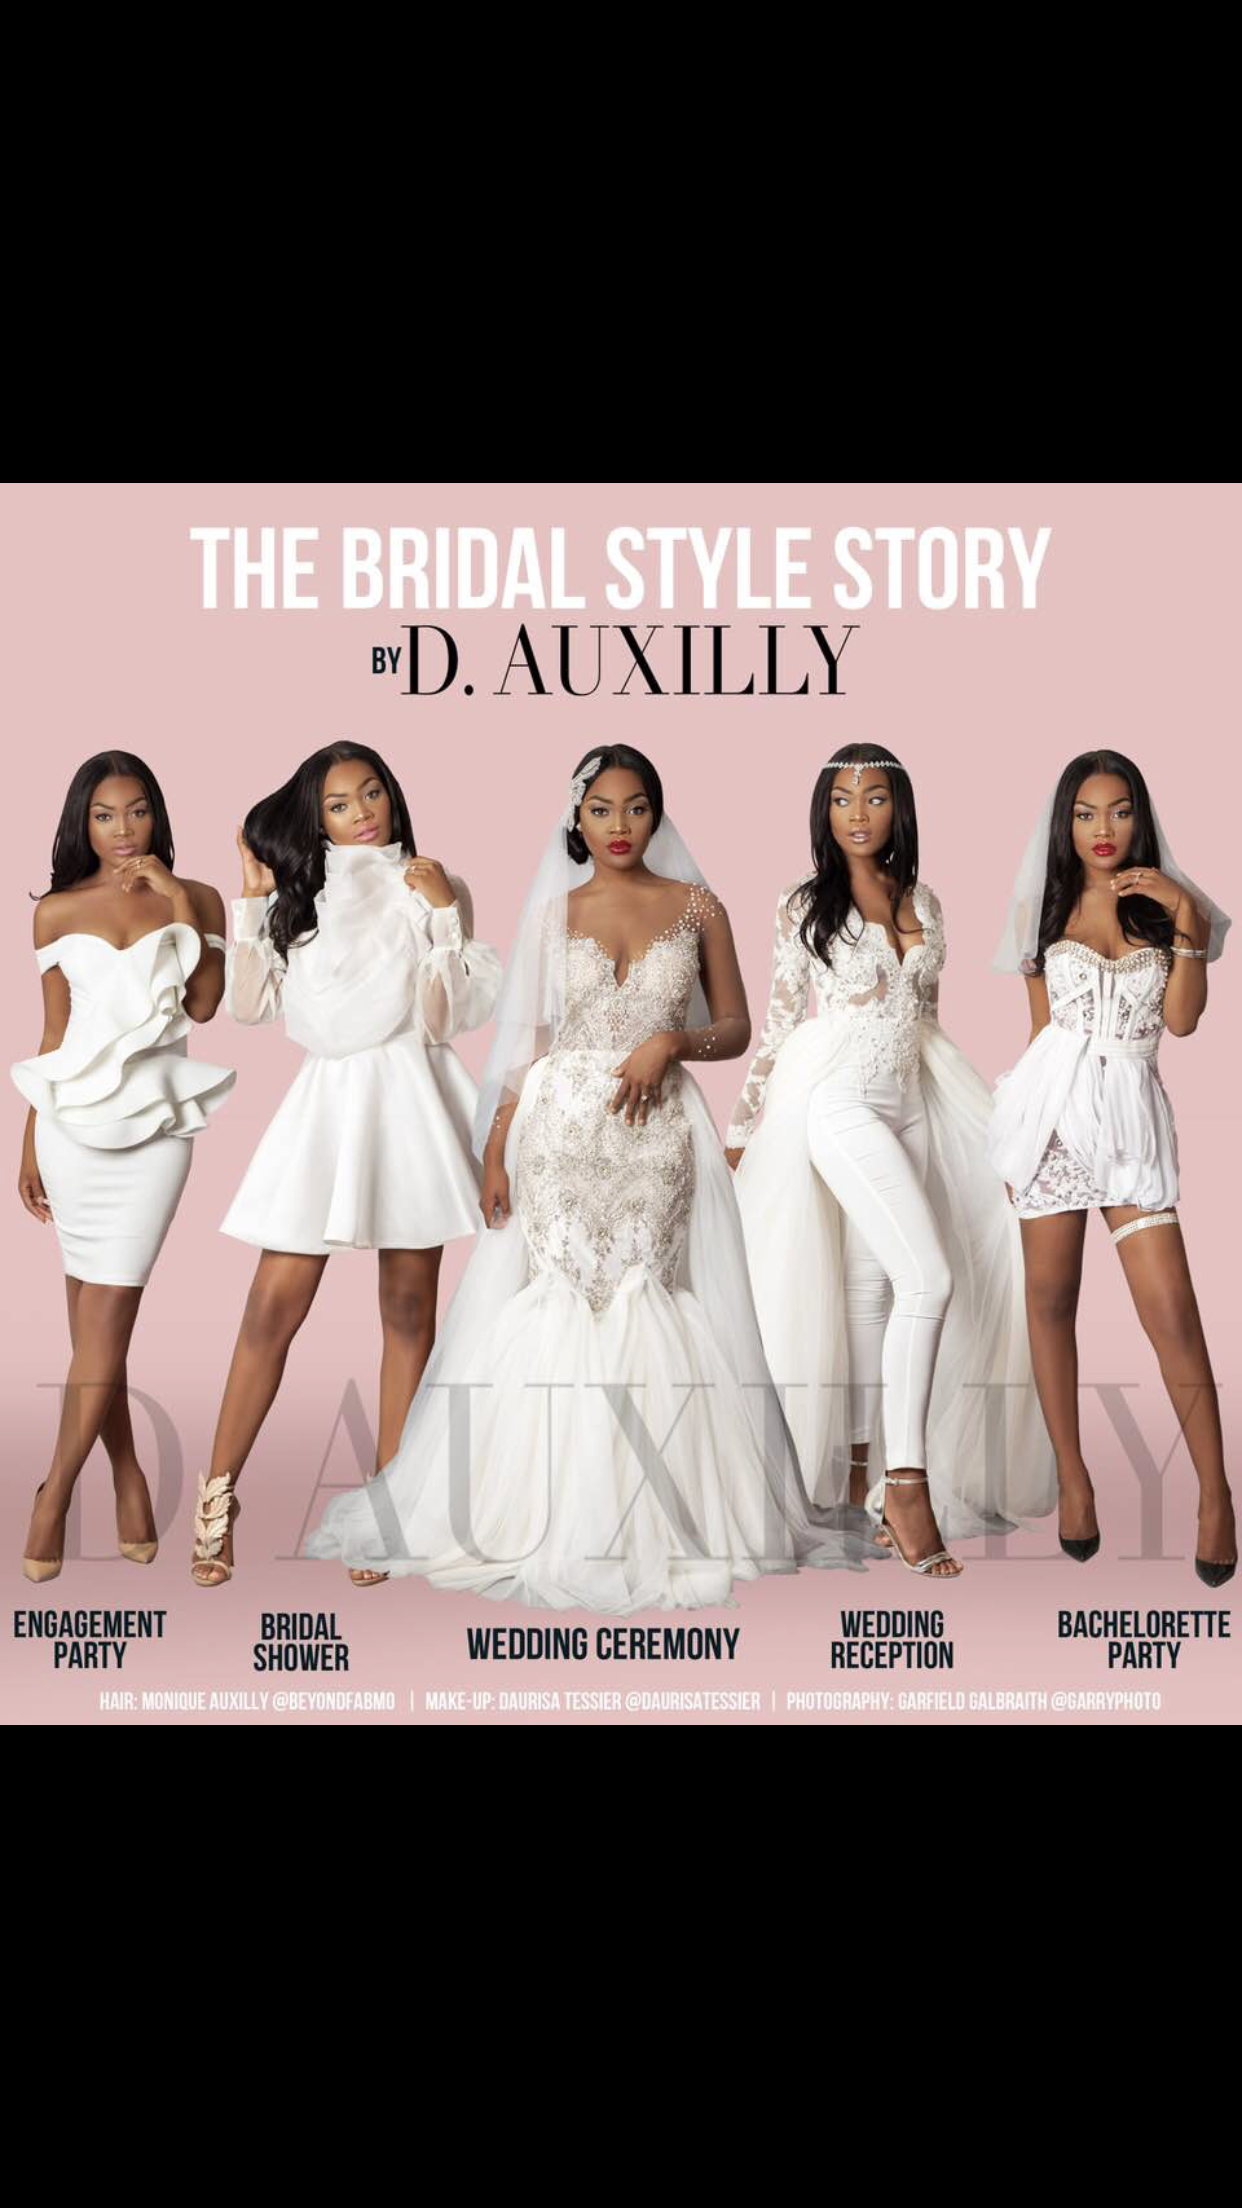 d2a609f9fb Follow us @ SIGNATURE BRIDE on Instagram and Twitter and on Facebook @  SIGNATURE BRIDE MAGAZINE. Check out our website @ signaturebride.net